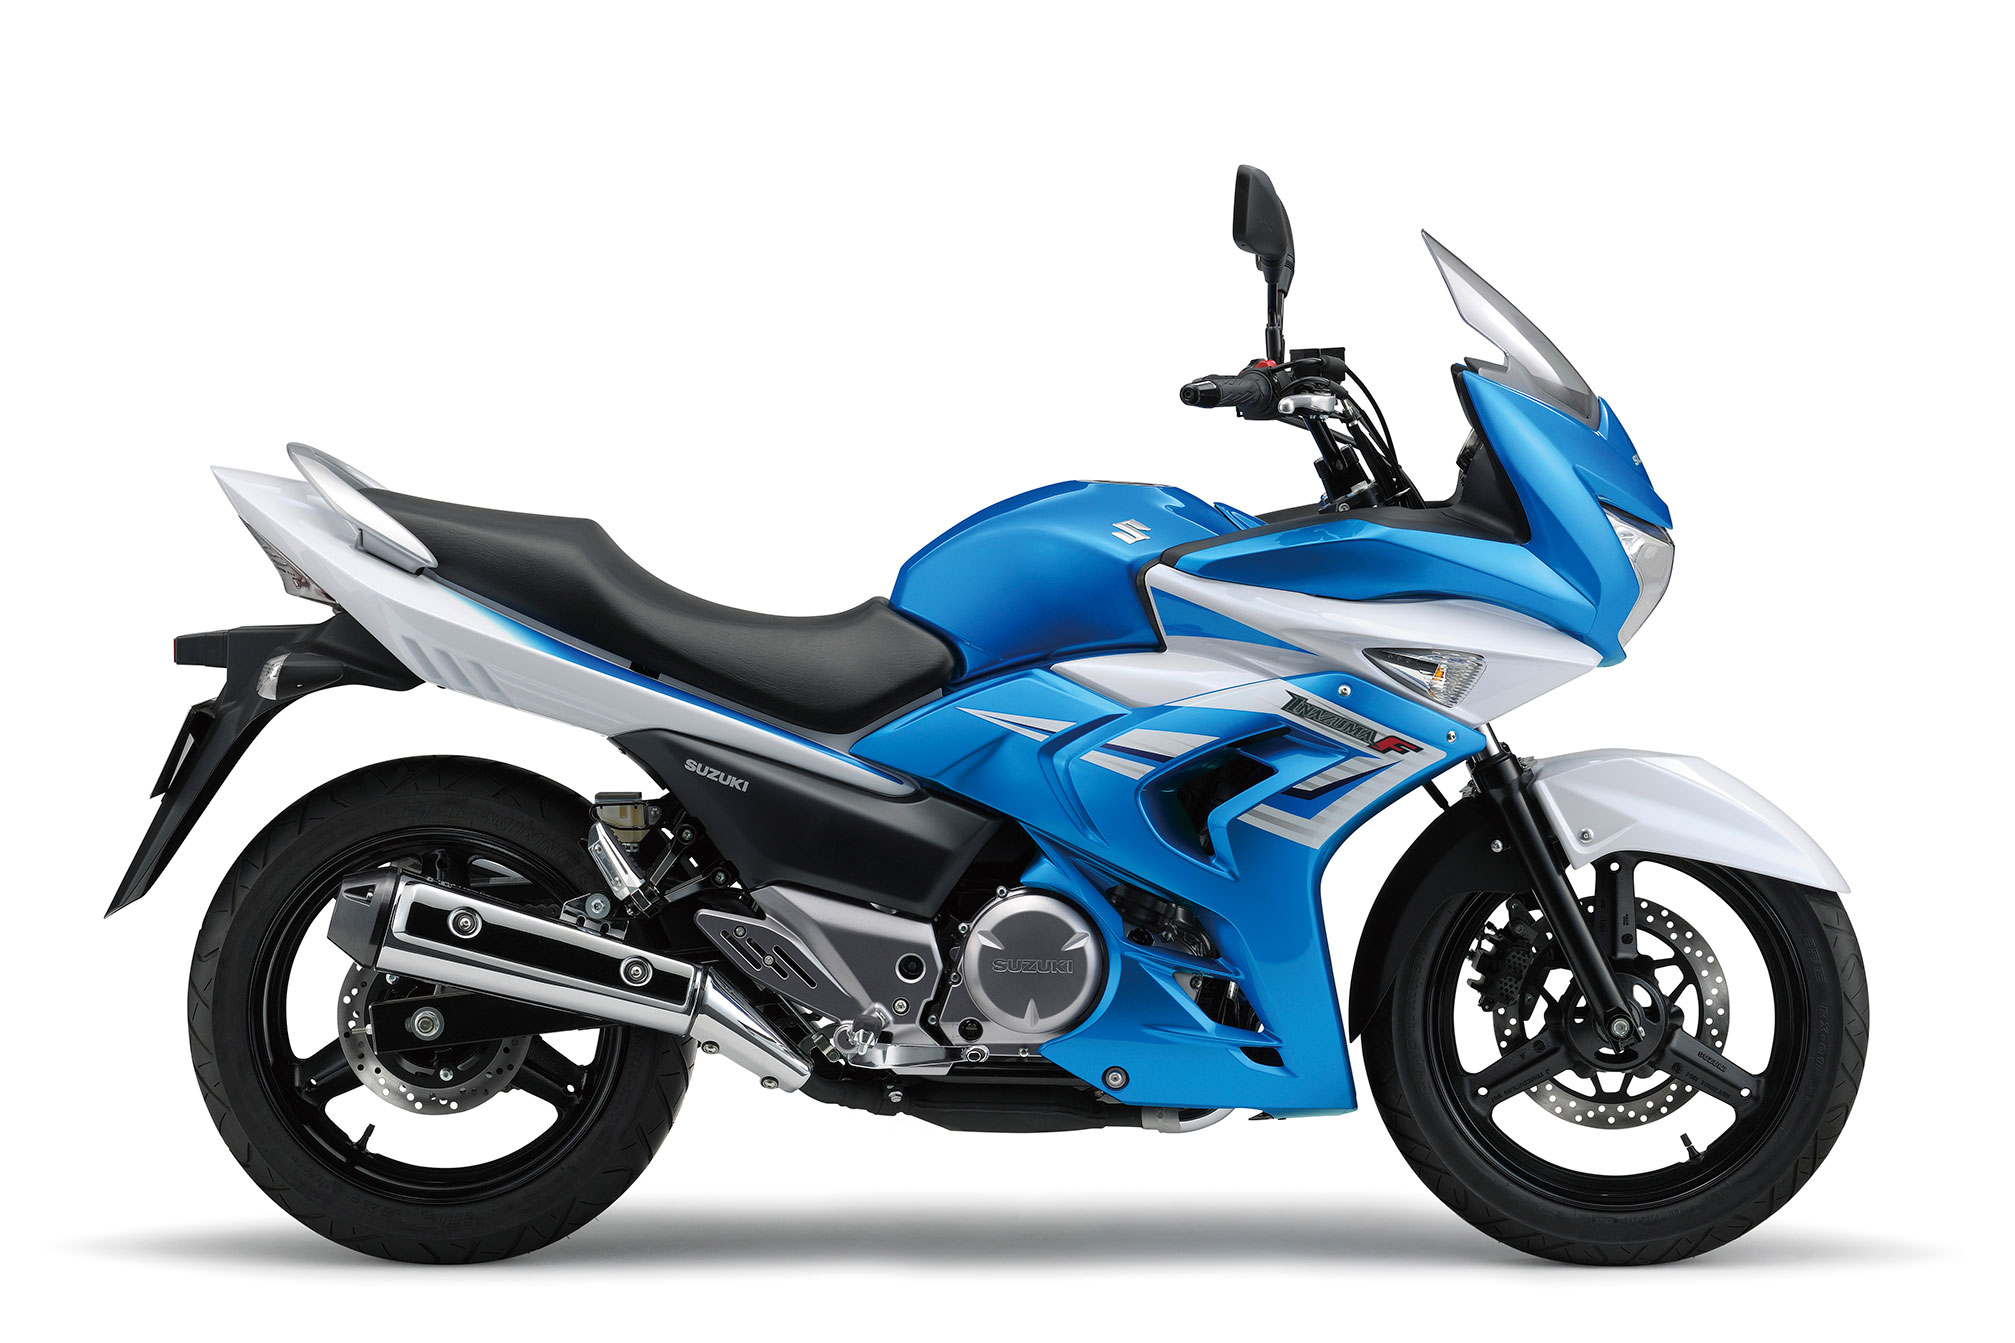 2015 suzuki inazuma gw250f review. Black Bedroom Furniture Sets. Home Design Ideas